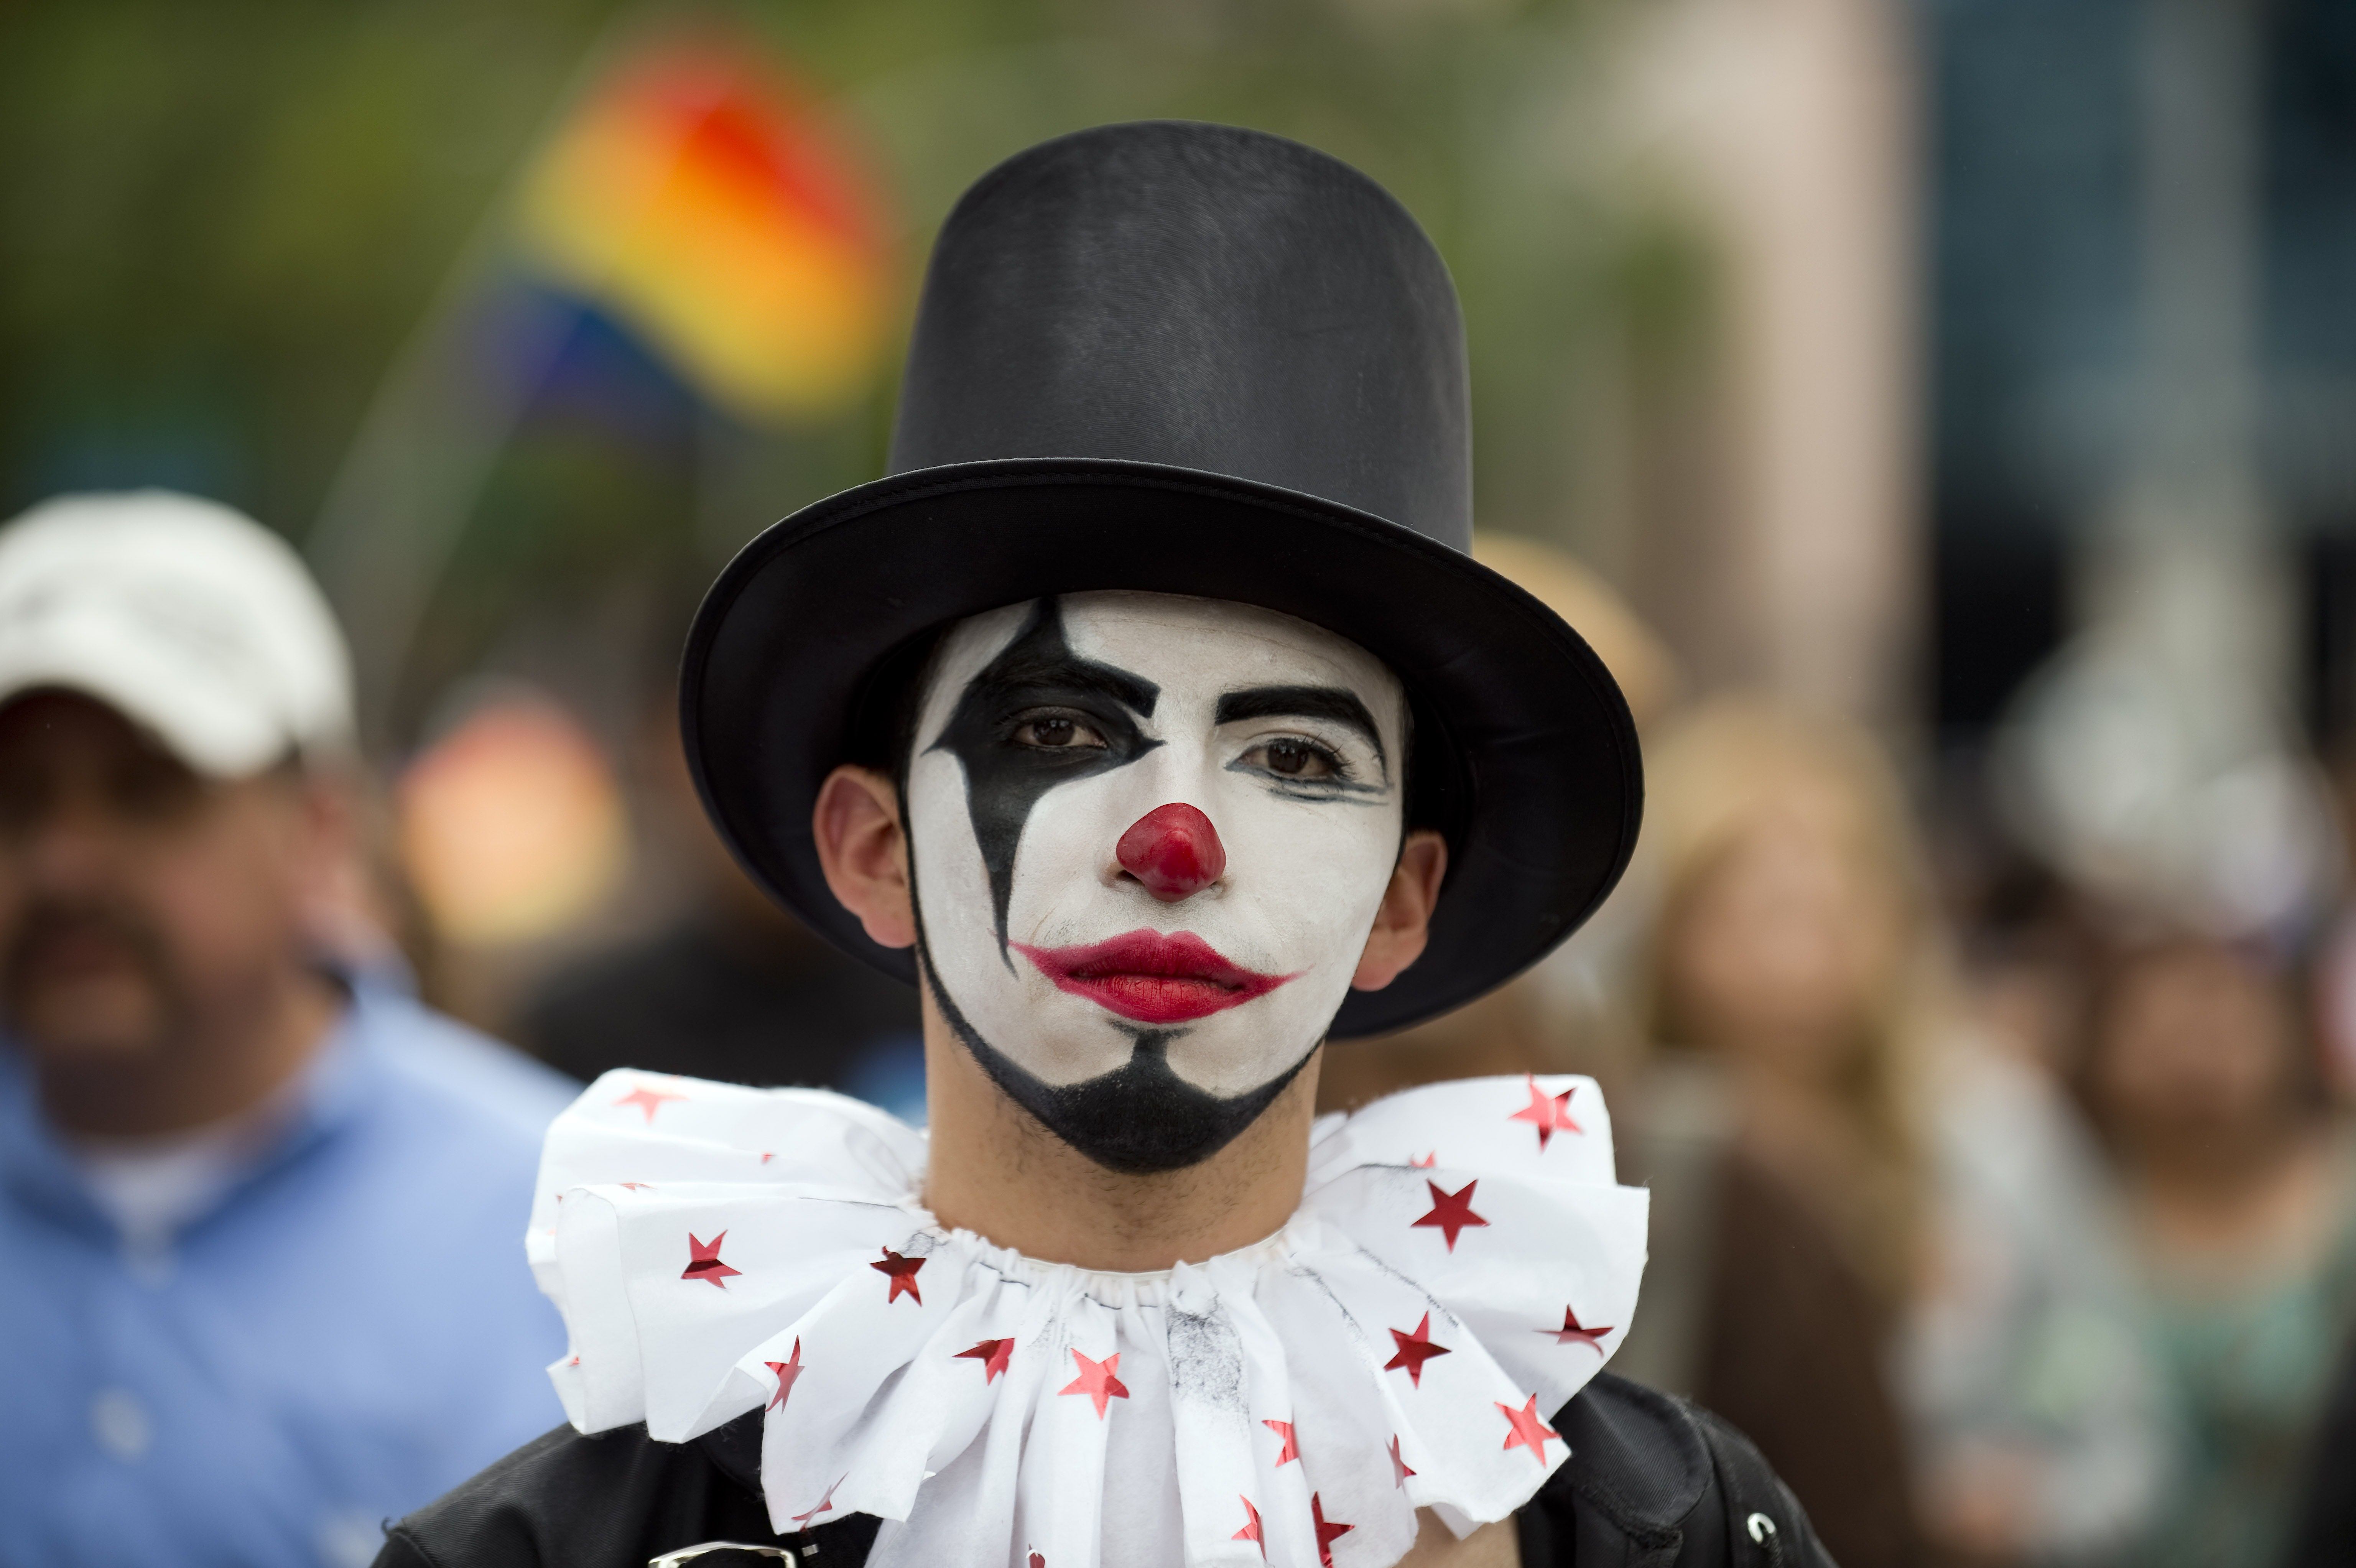 A person participates in the Gay Pride Parade in Mexico City, on June 28, 2014.